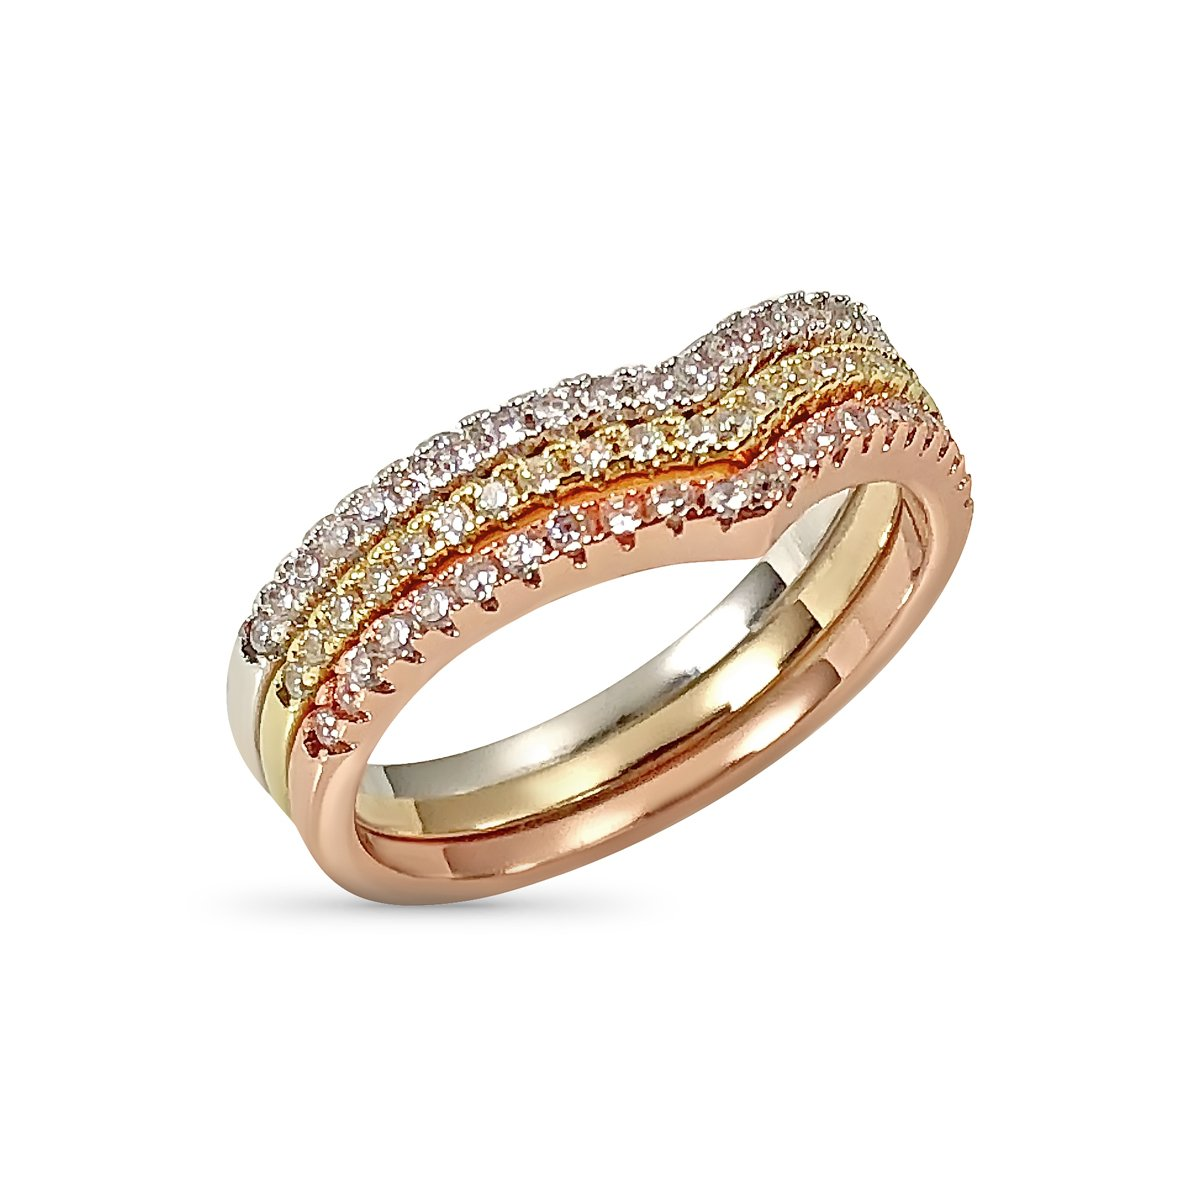 Belle Chérie Chevron Ring Set - Three Stackable Rings Gold Rose Silver Tone Pave Set Crystals